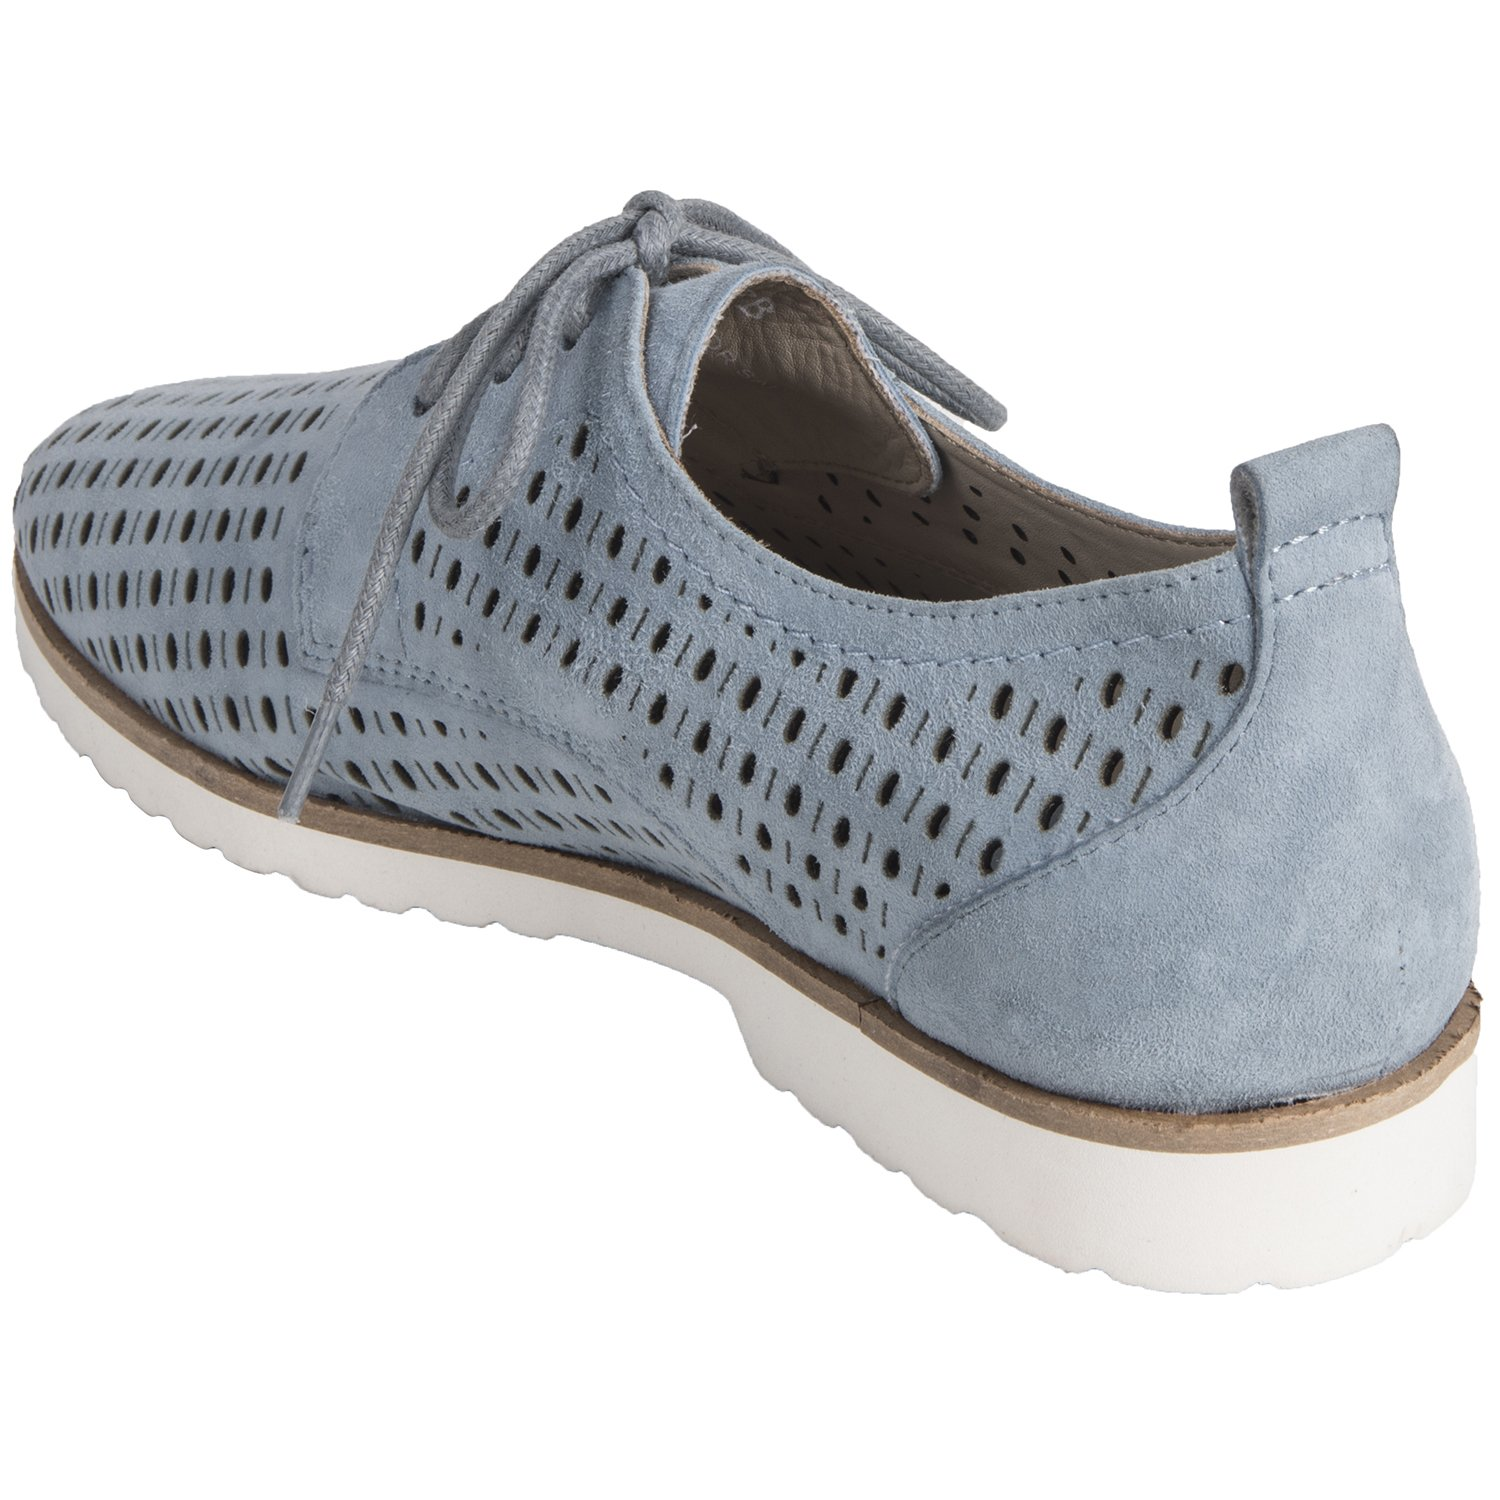 Earth Shoes Camino B074KDZMXR 8 B(M) US|Blue